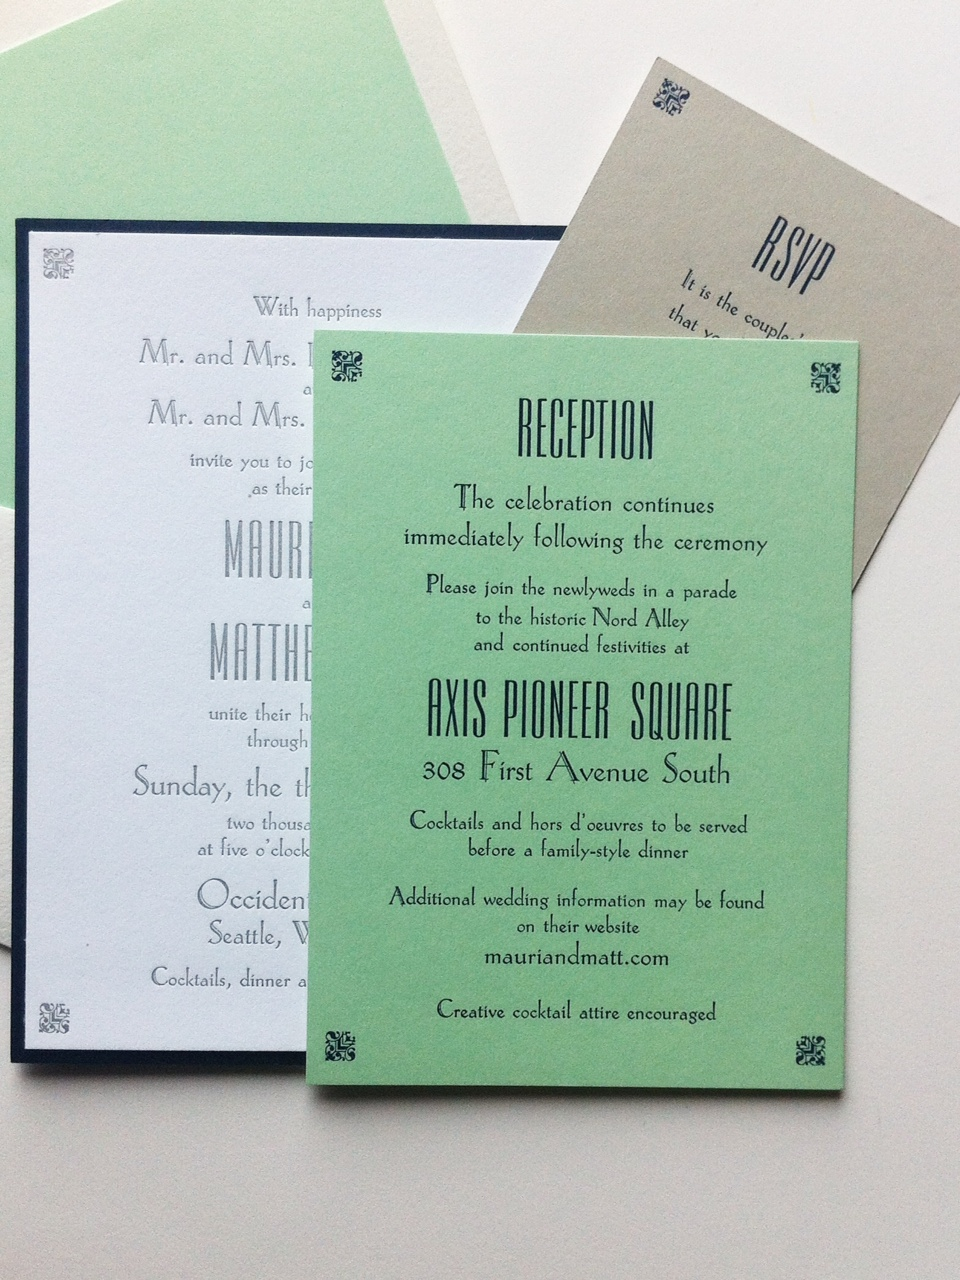 Blog bremelo press wedding invitations for mauri and matt made with vintage hand set type from our collection here at bremelo press hand set and printed by the bride and reheart Gallery